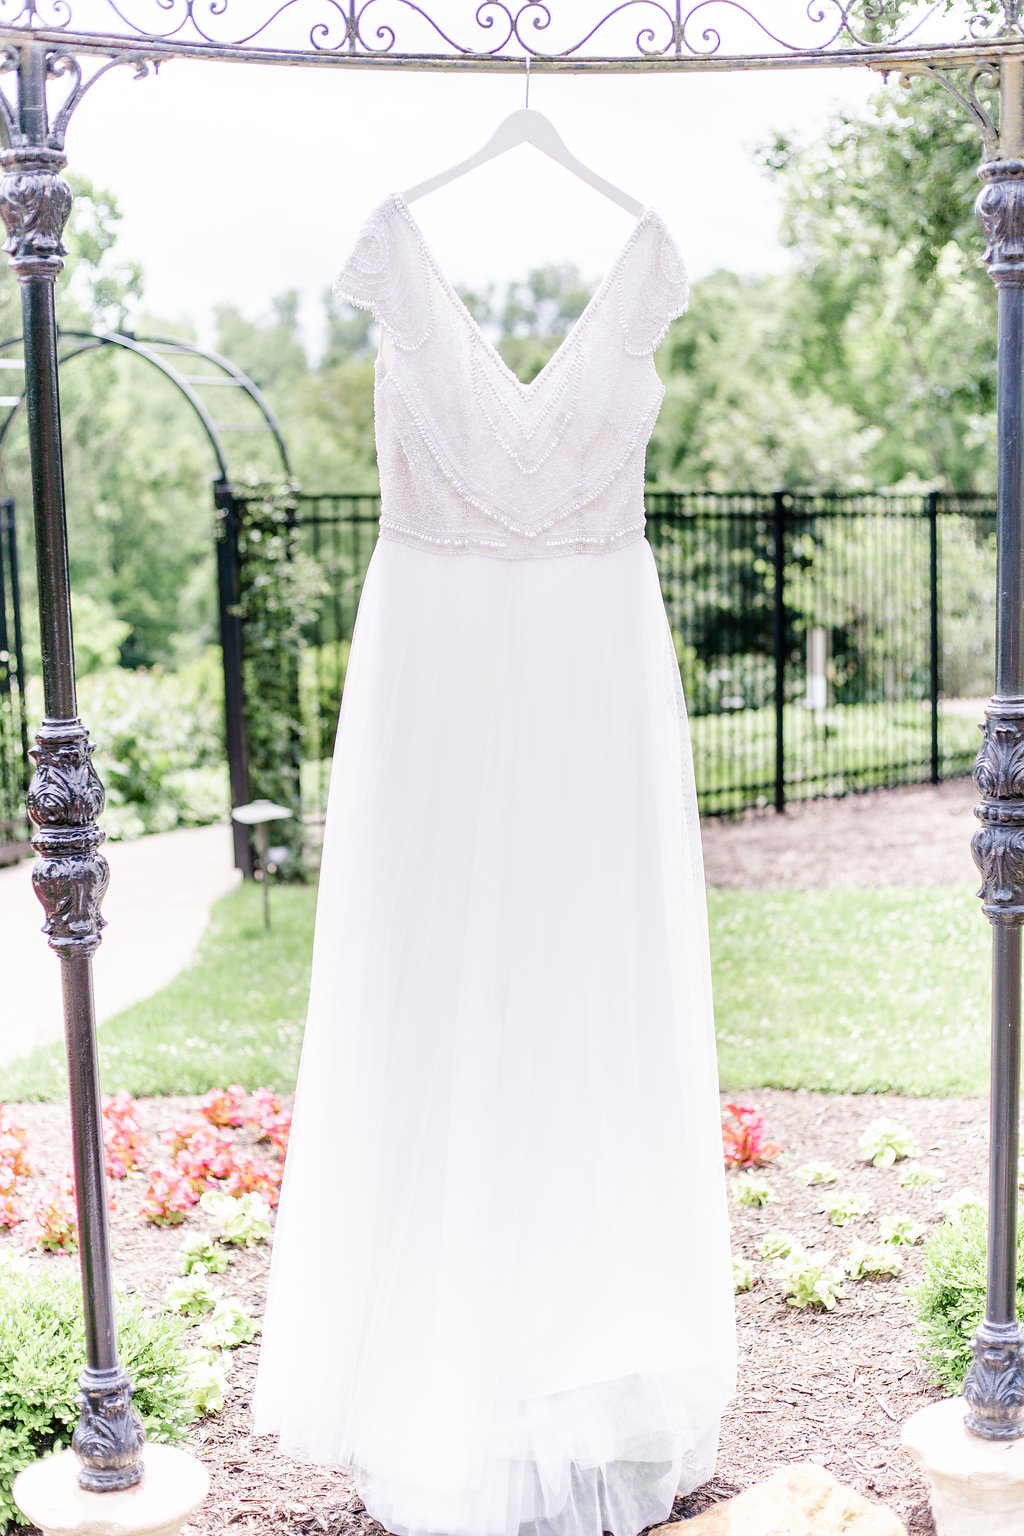 Theia_wedding_gown_Nima_blanc_de_blanc_pittsburgh_summer_garden_wedding_Bespoke_and_beloved_events